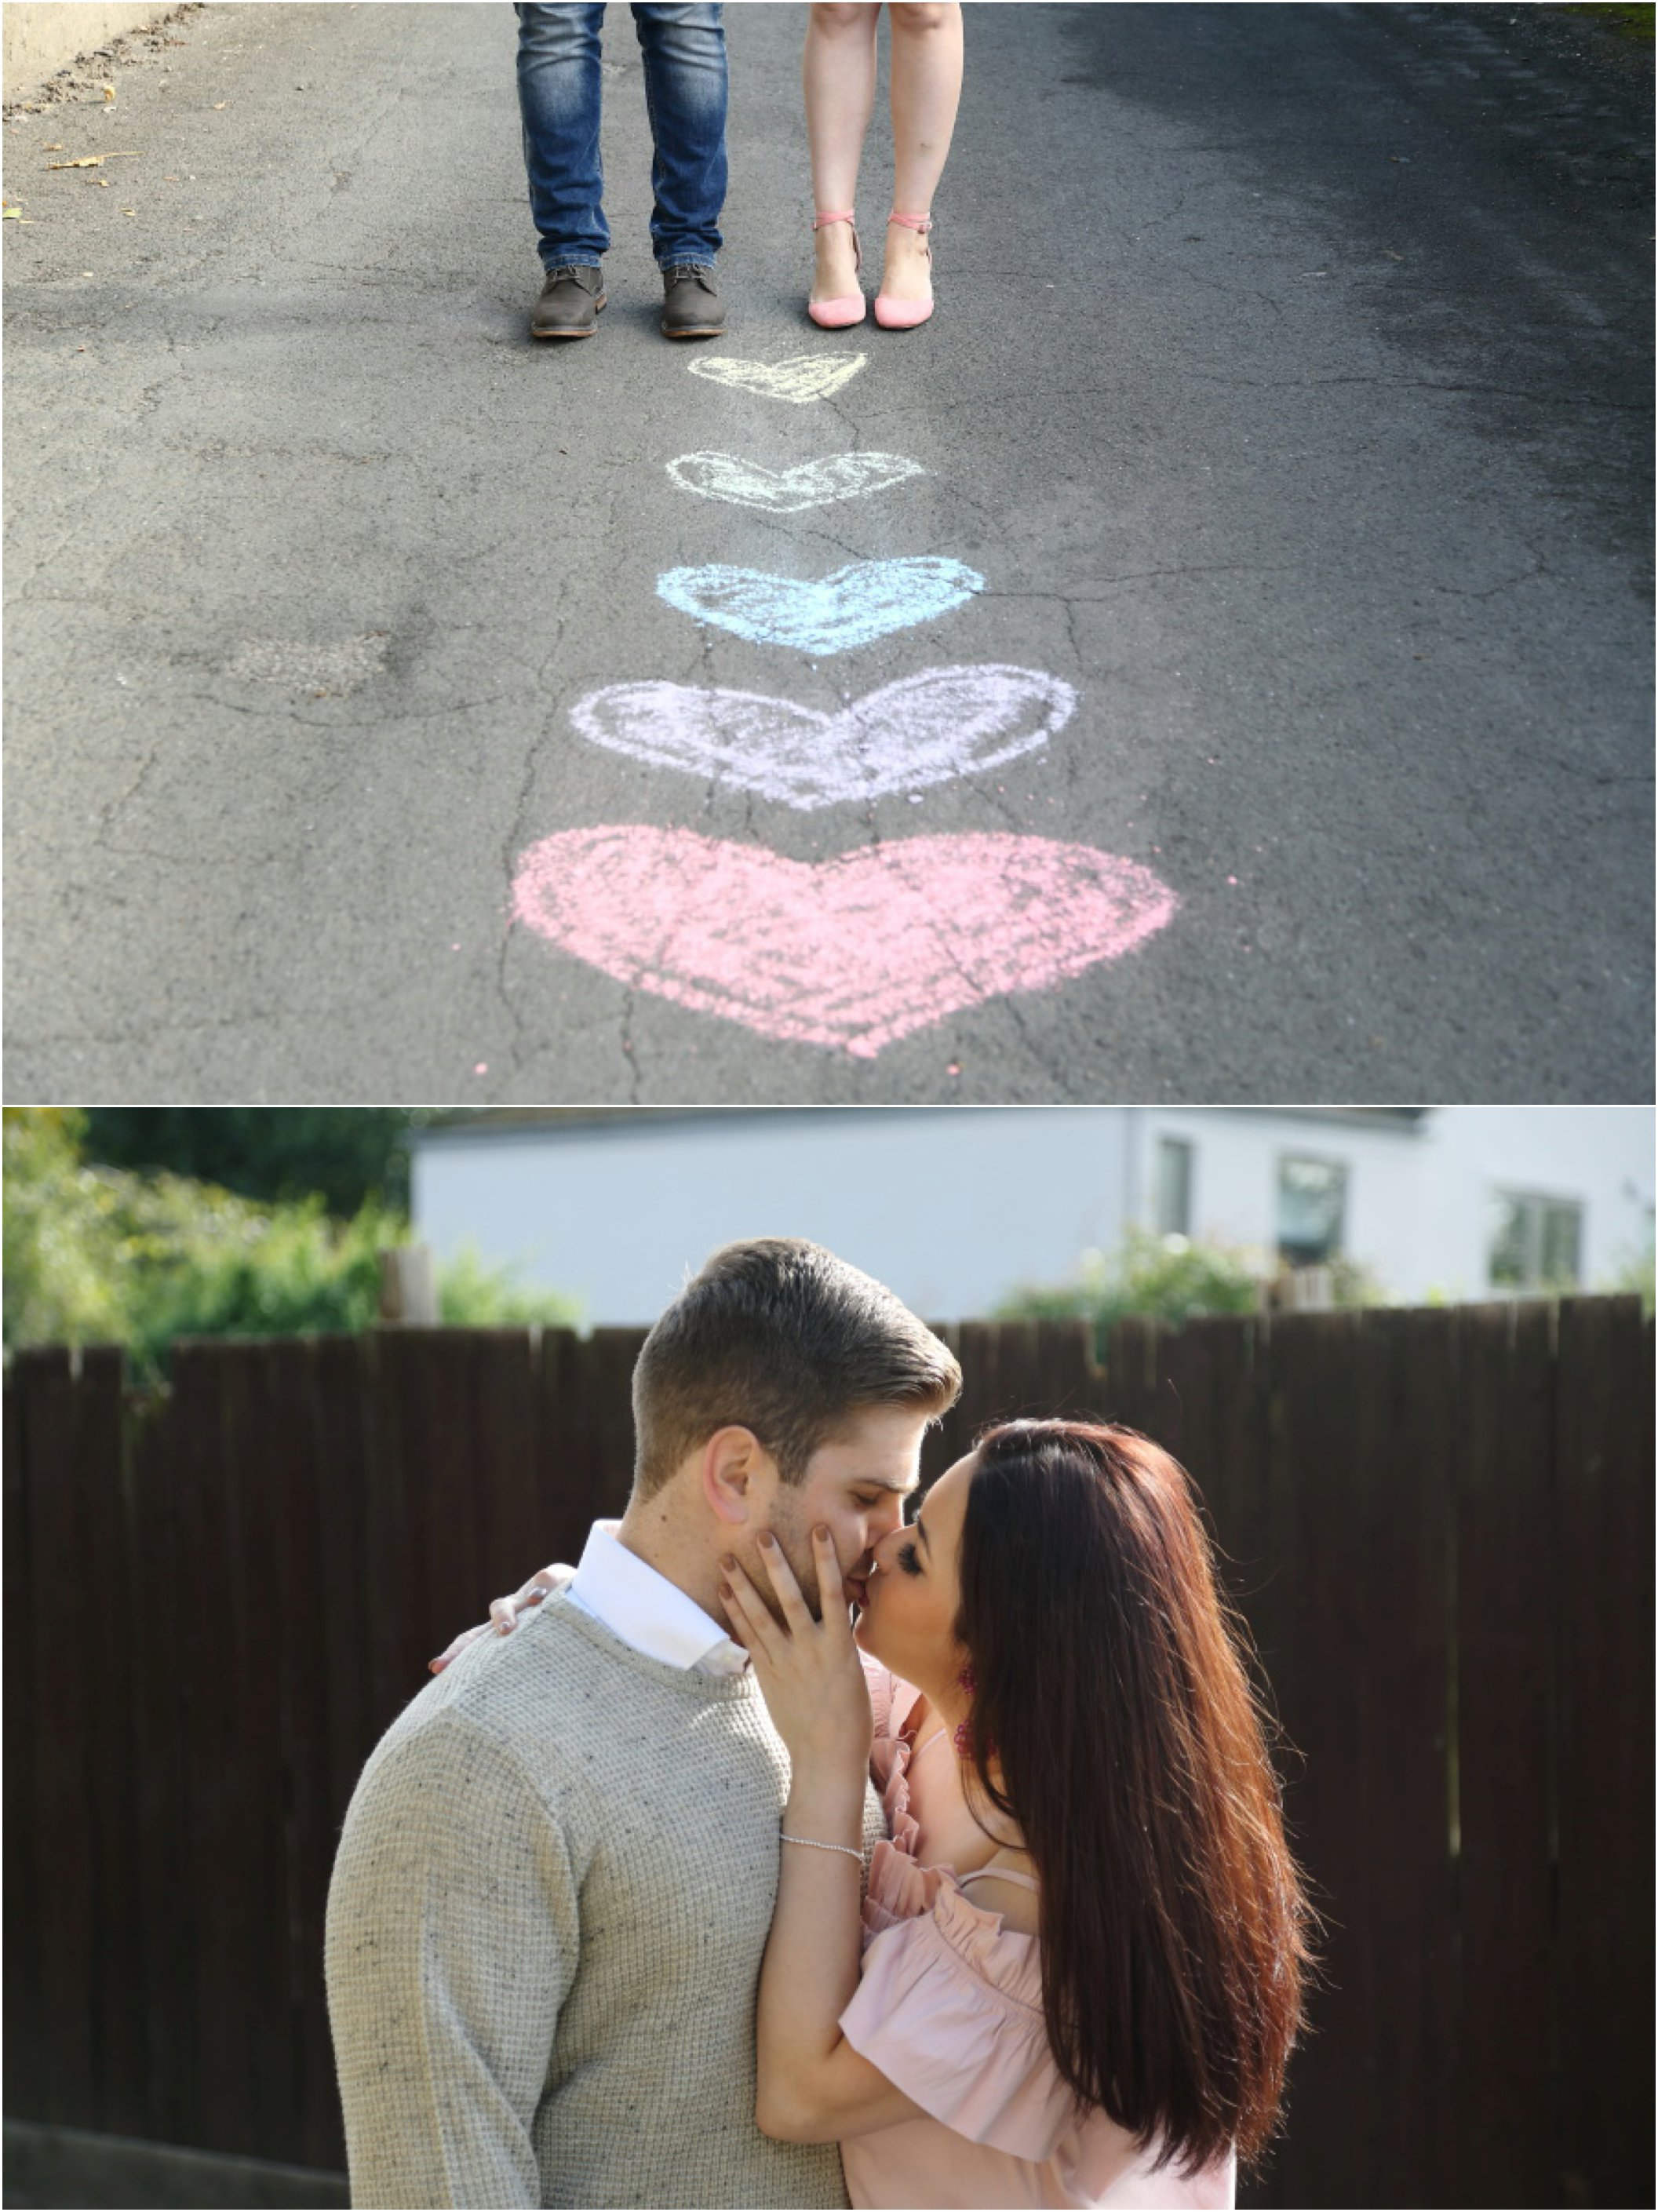 chalk love hearts at romantic couples photo shoot